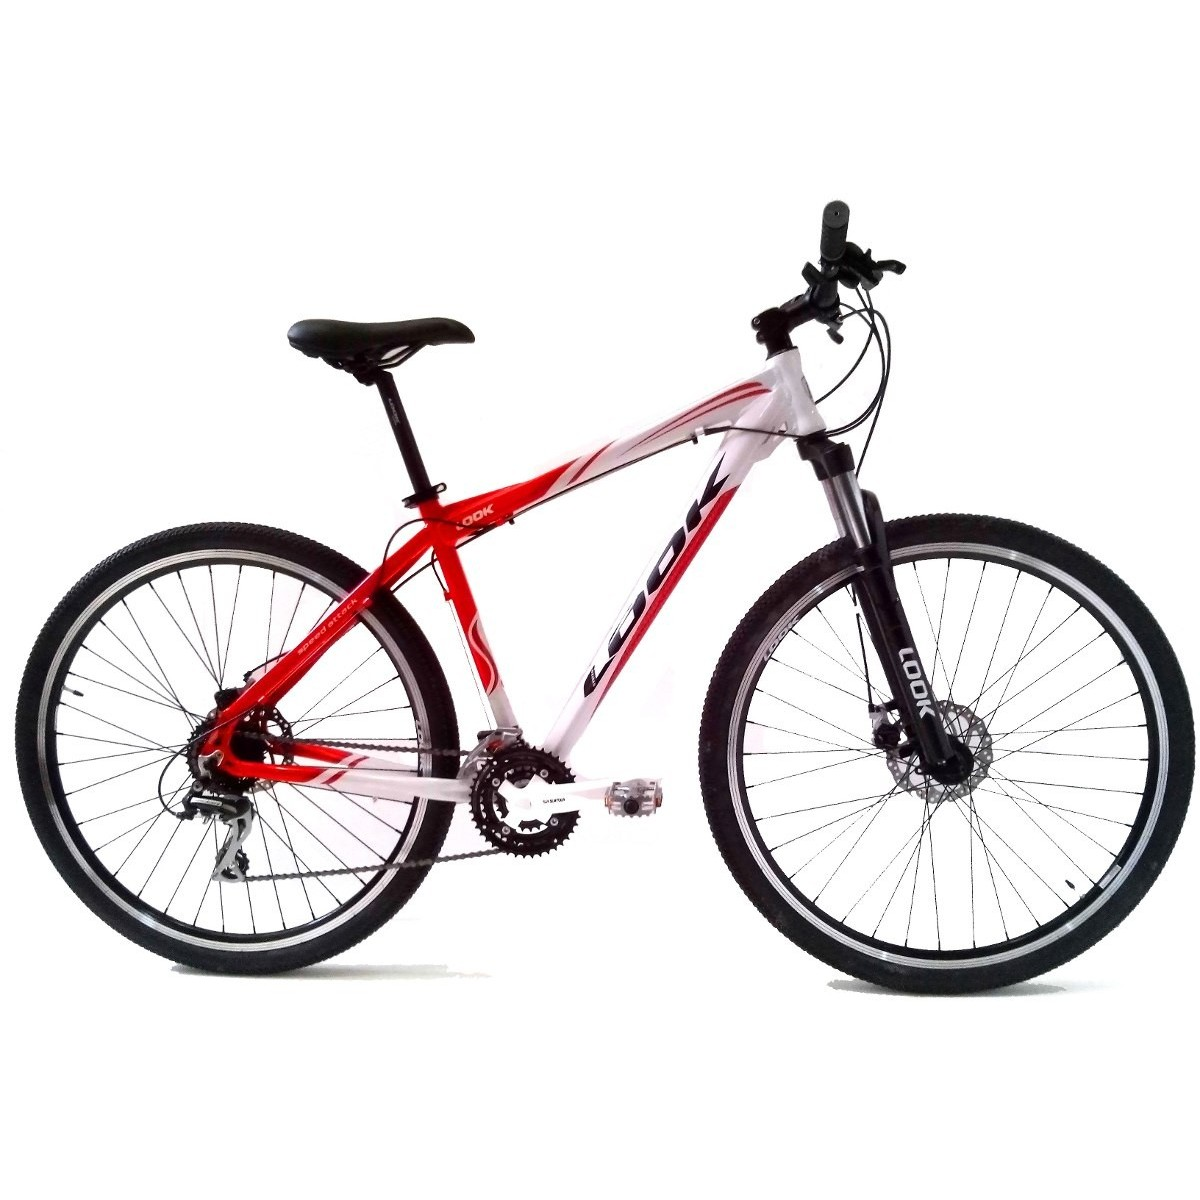 Cuadros 29er Cuadro Mountain Bike 29er Look Bici Urbana